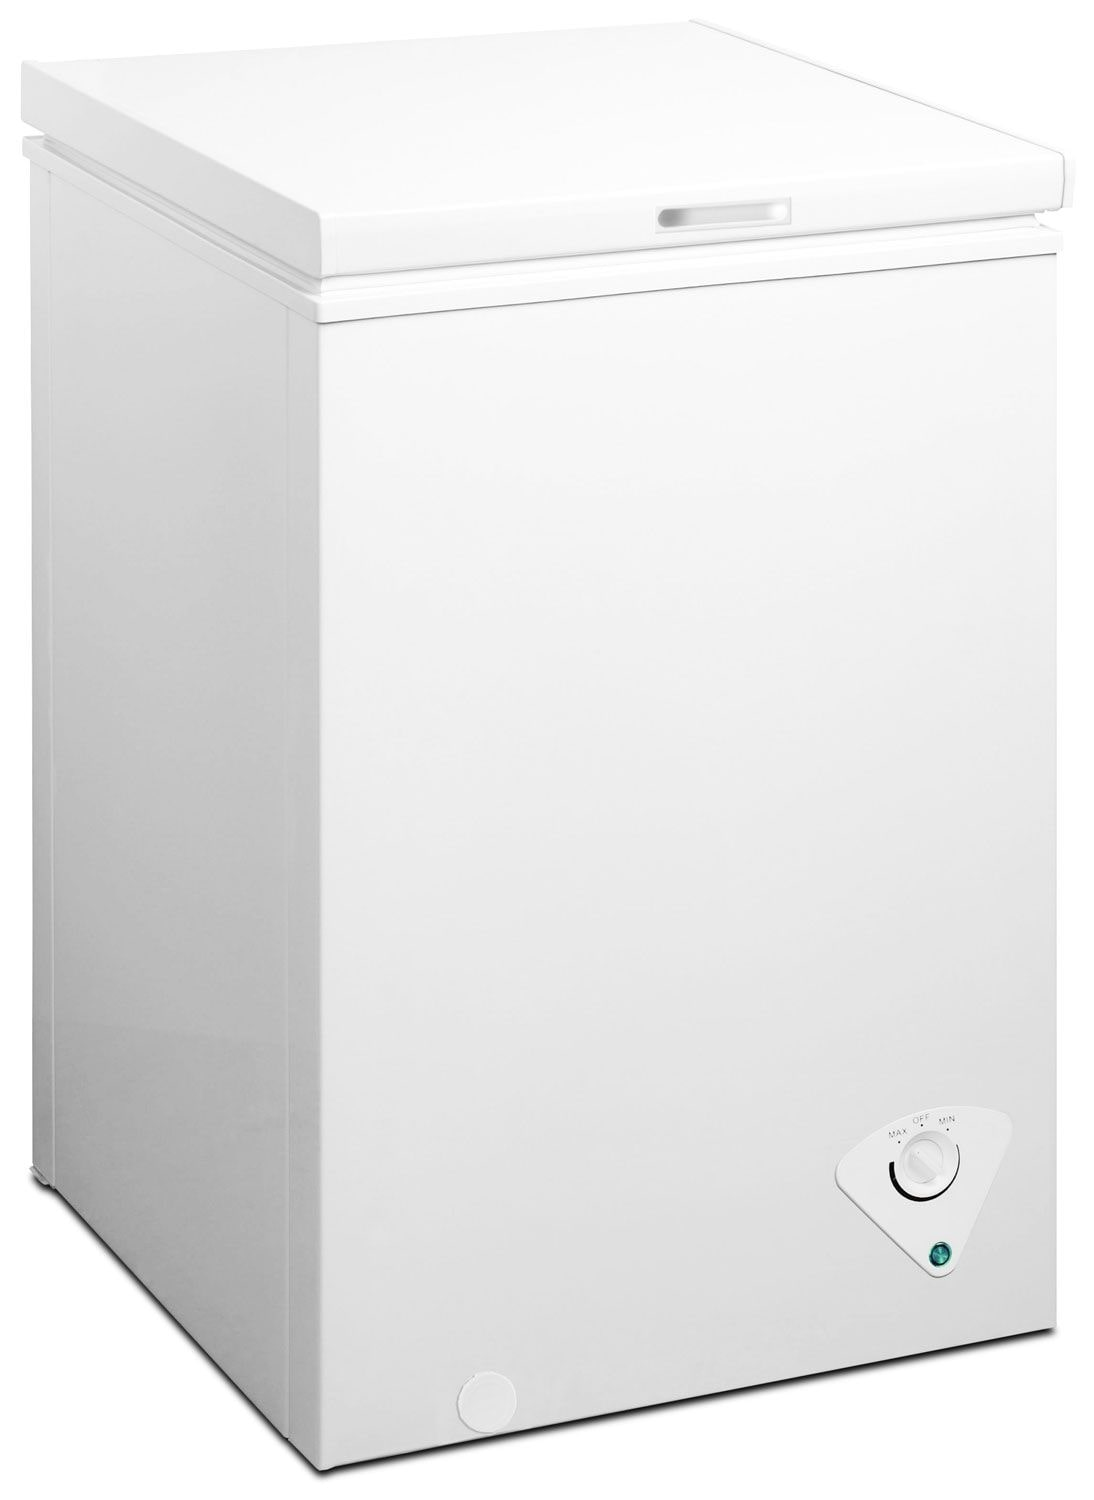 Refrigerators and Freezers - Midea 3.5 Cu. Ft. Chest Freezer - White